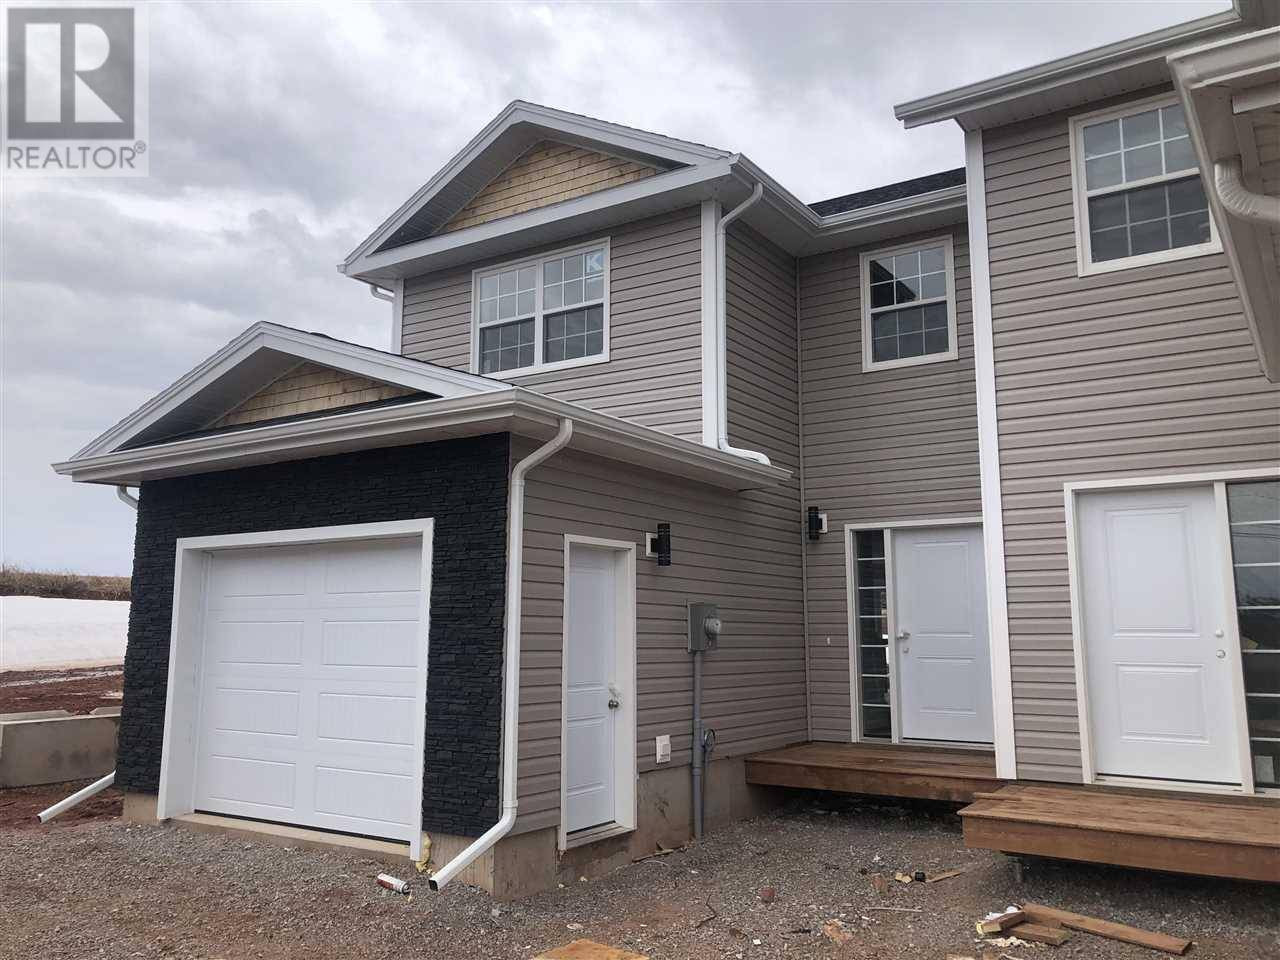 Townhouse for sale at 74 Macwilliams Rd East Royalty Prince Edward Island - MLS: 201916462